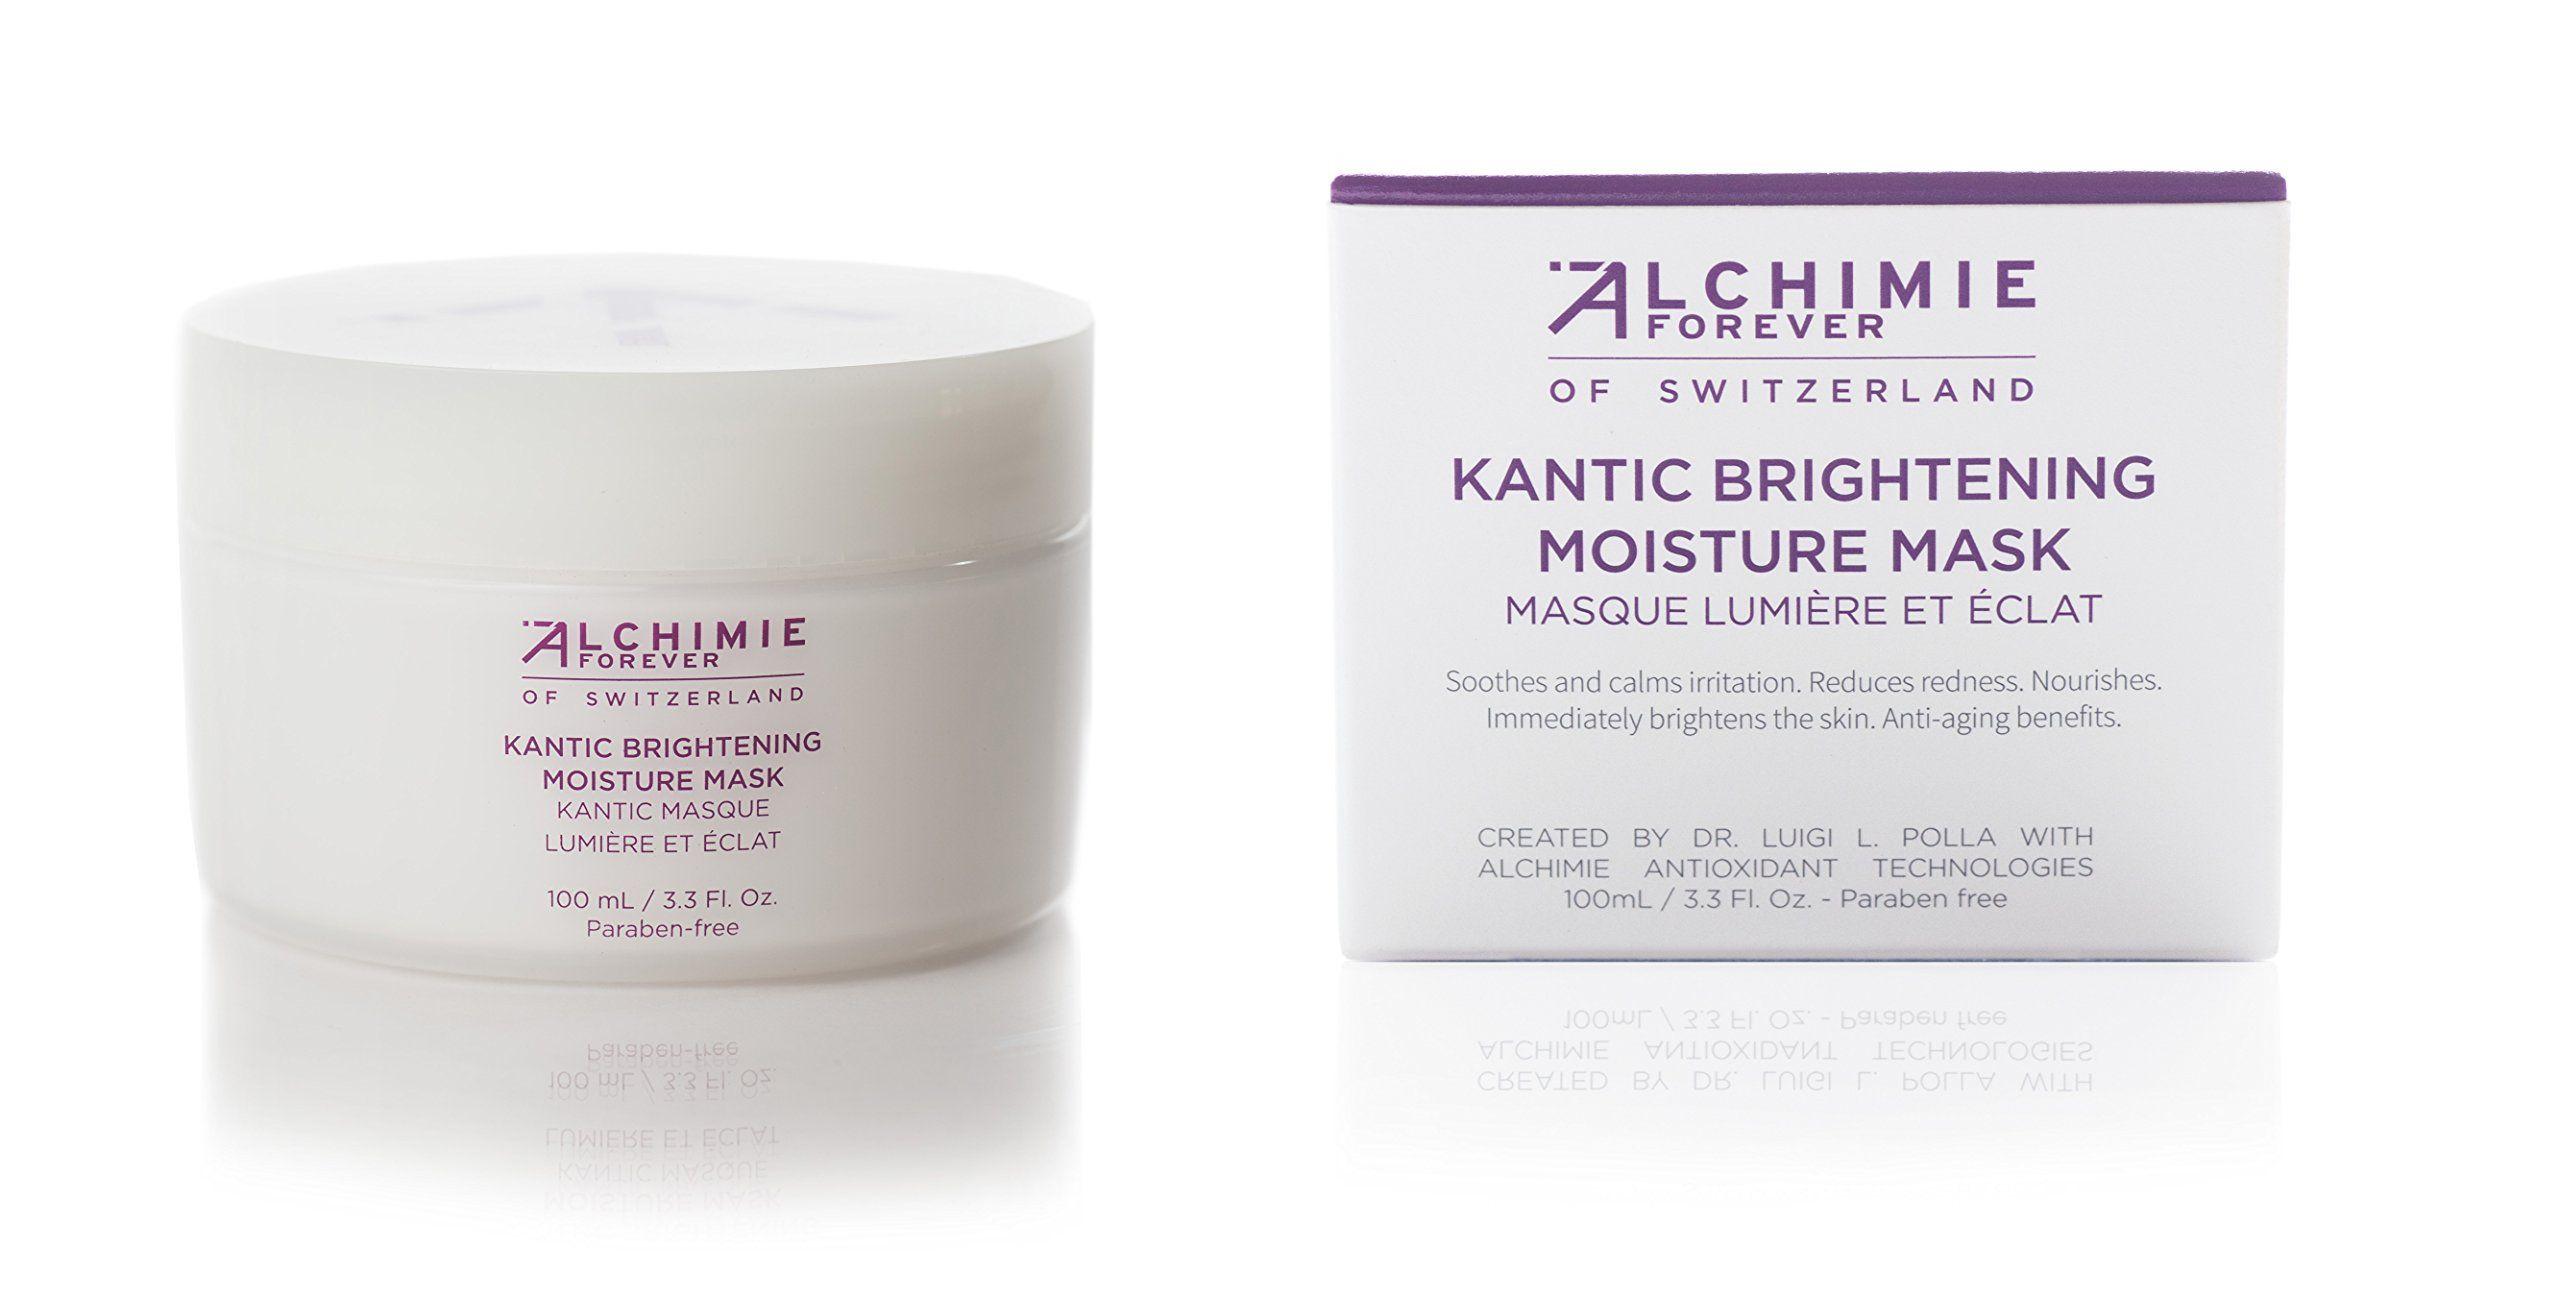 Alchimie Forever Kantic Brightening Moisture Mask Click On The Image For Additional Details This Is An Affiliate Link Faci Moisturizer Facial Masks Mask